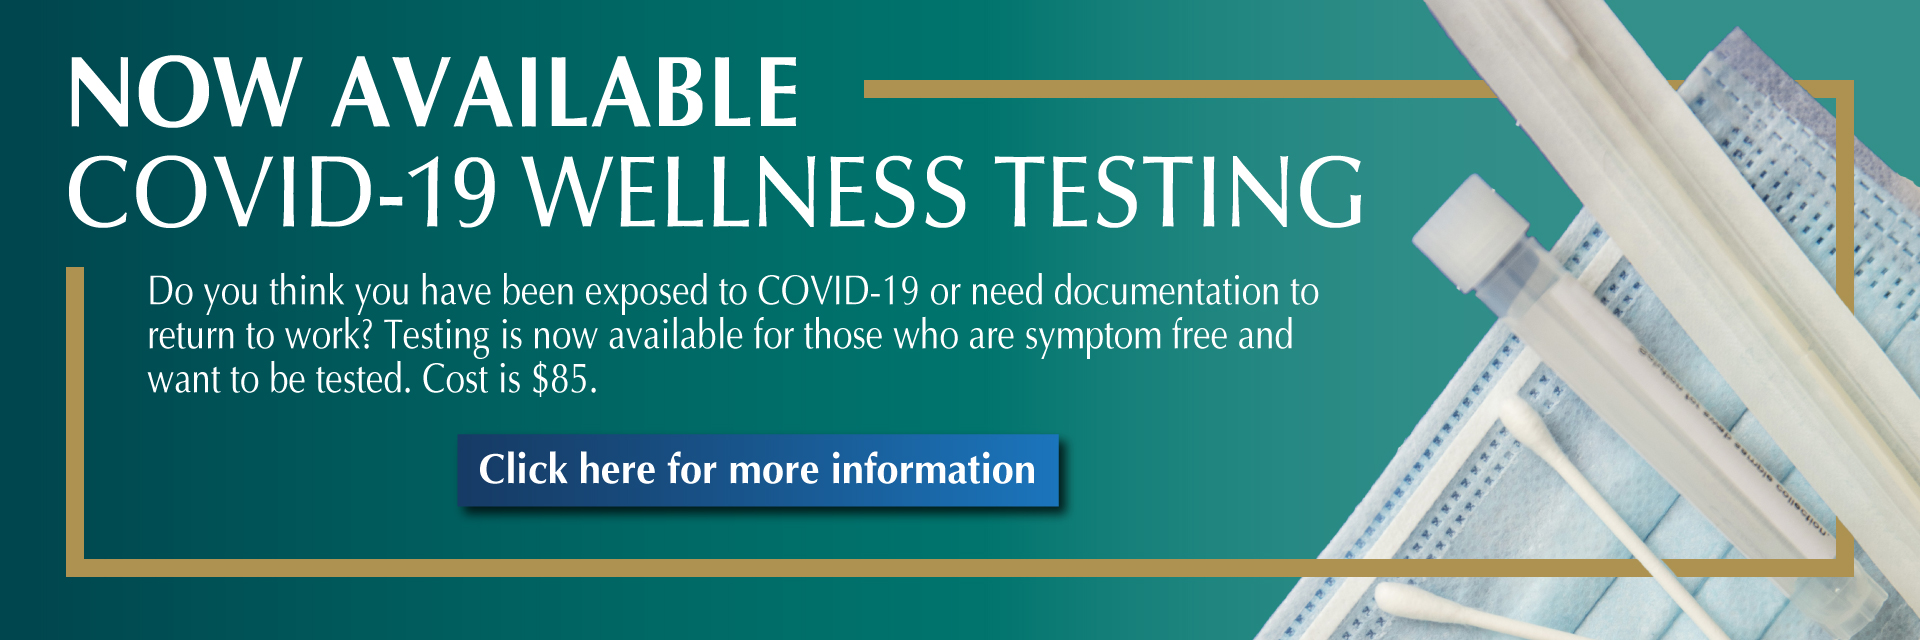 COVID-19 Wellness Testing (Antigen Test) Now offered to asymptomatic individuals.